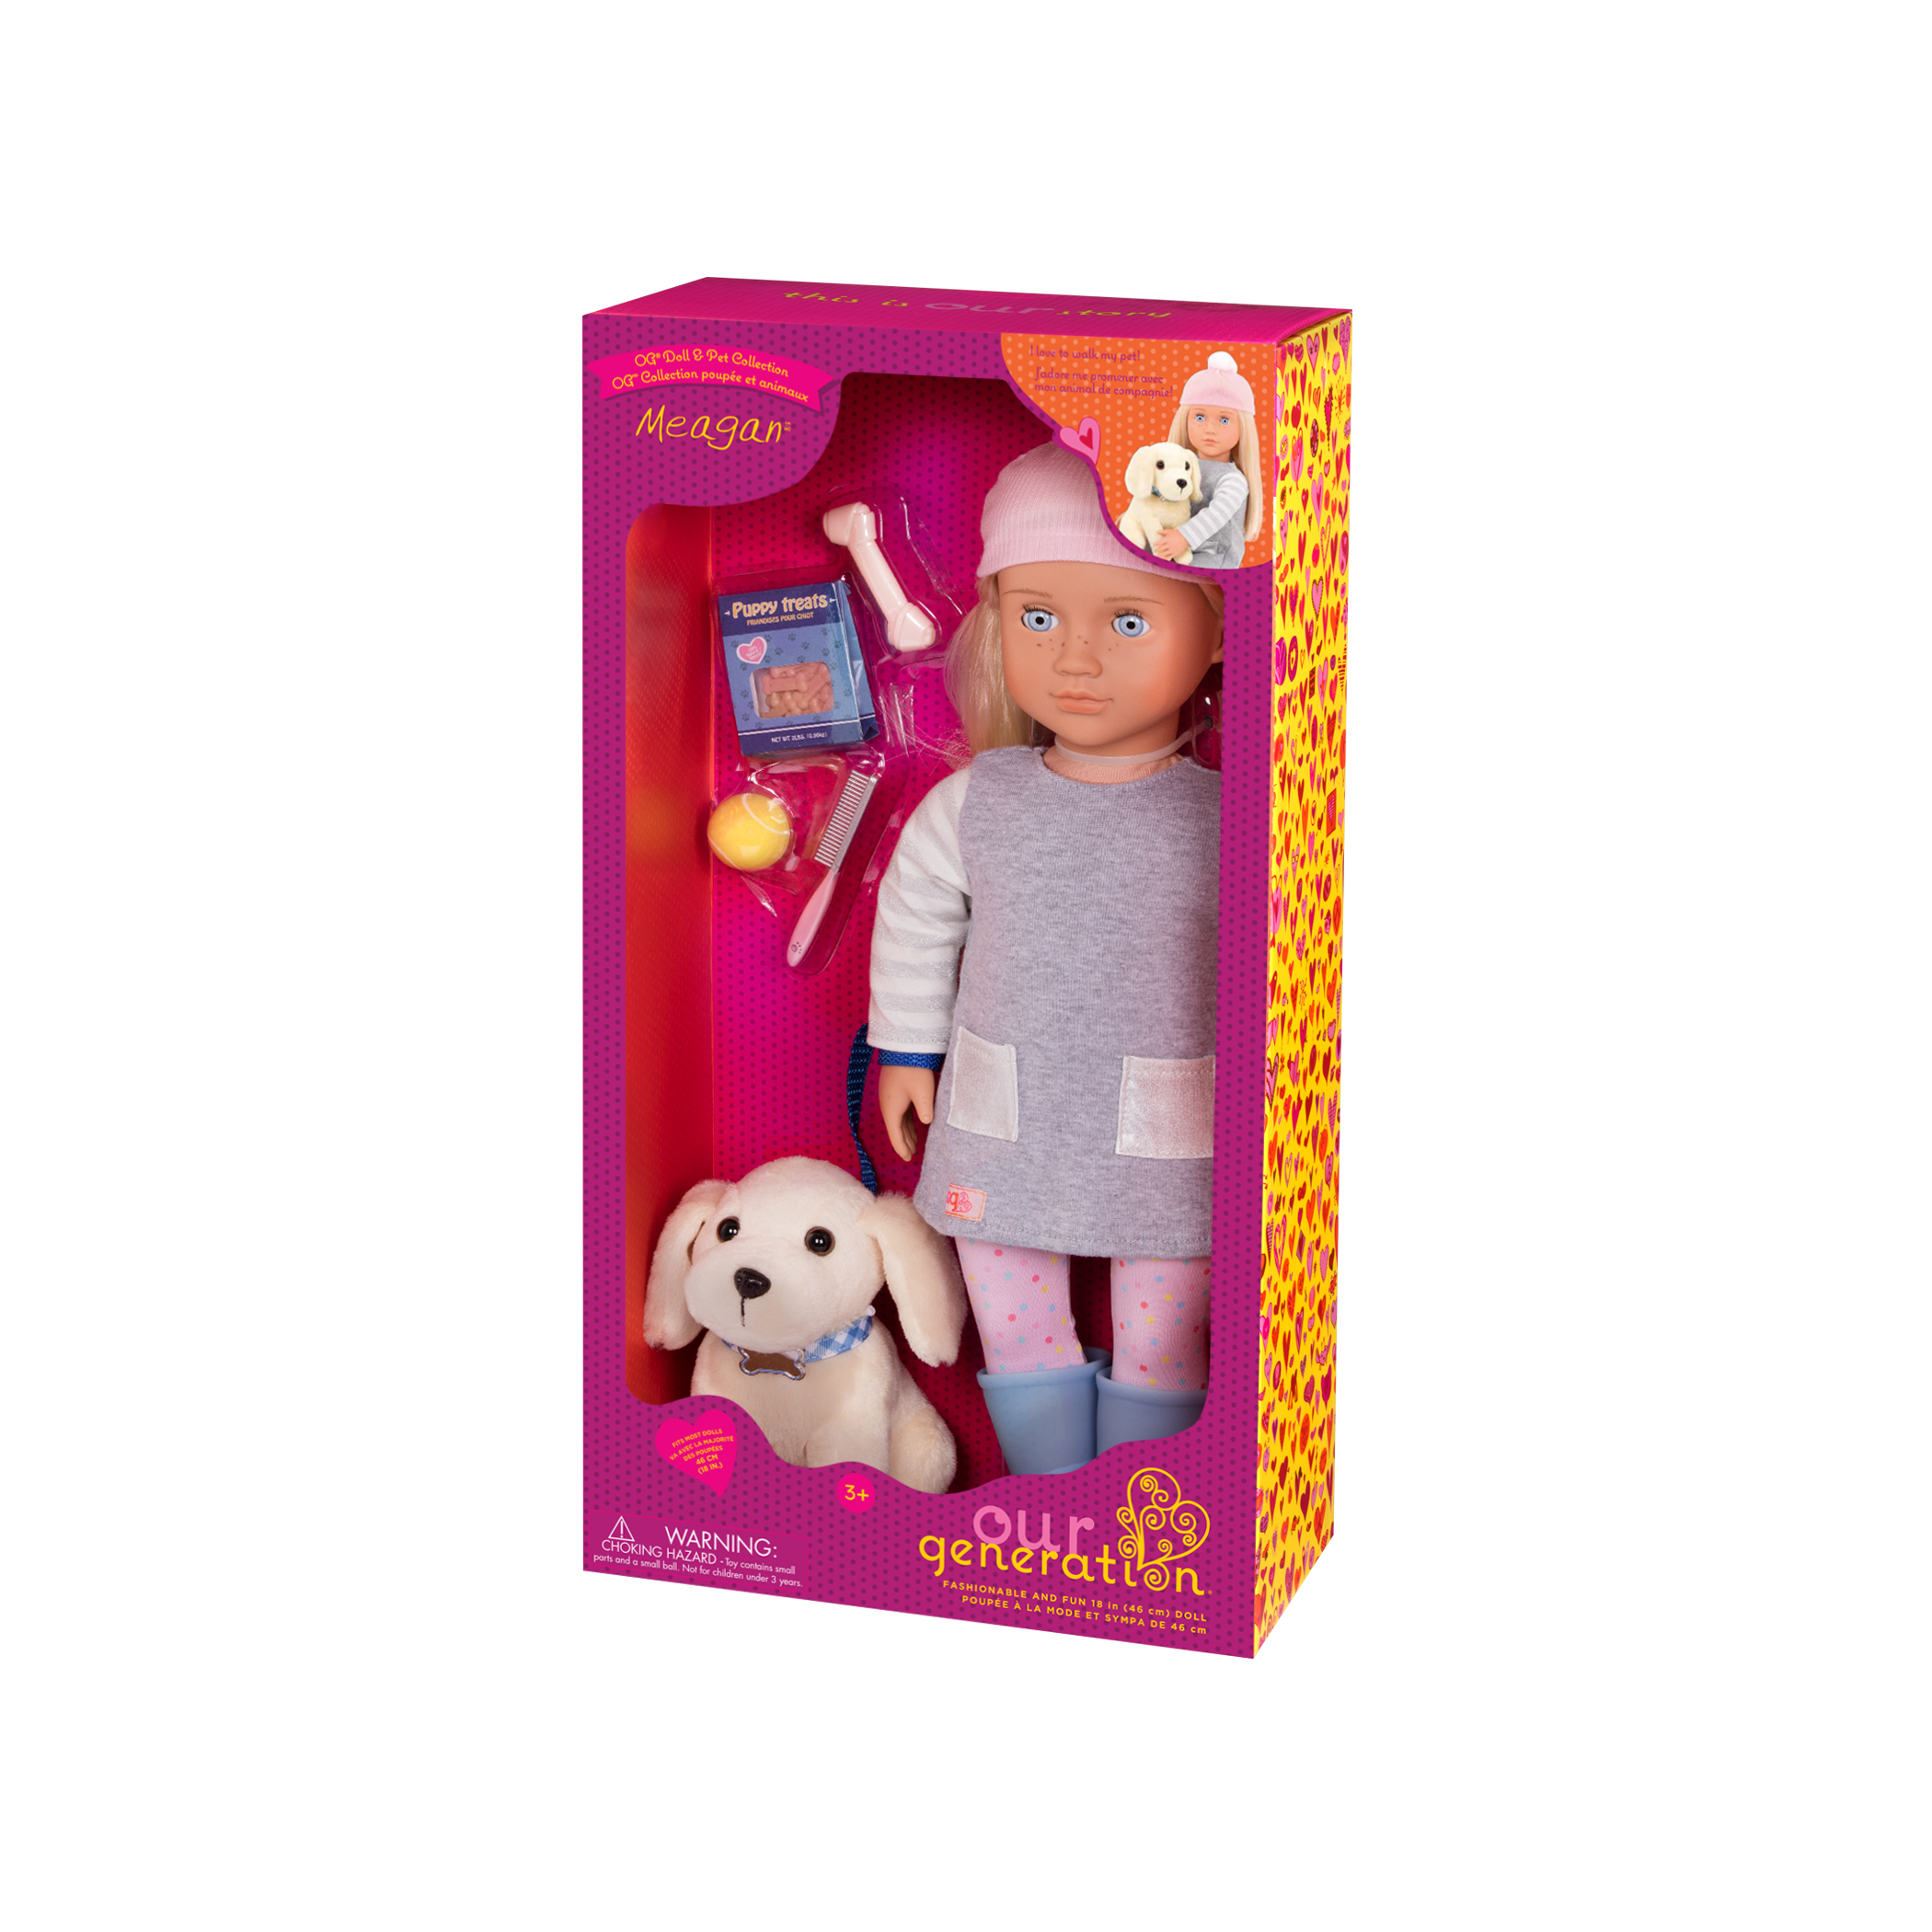 Meagan and Golden Retriever 18-inch doll and pet in packaging